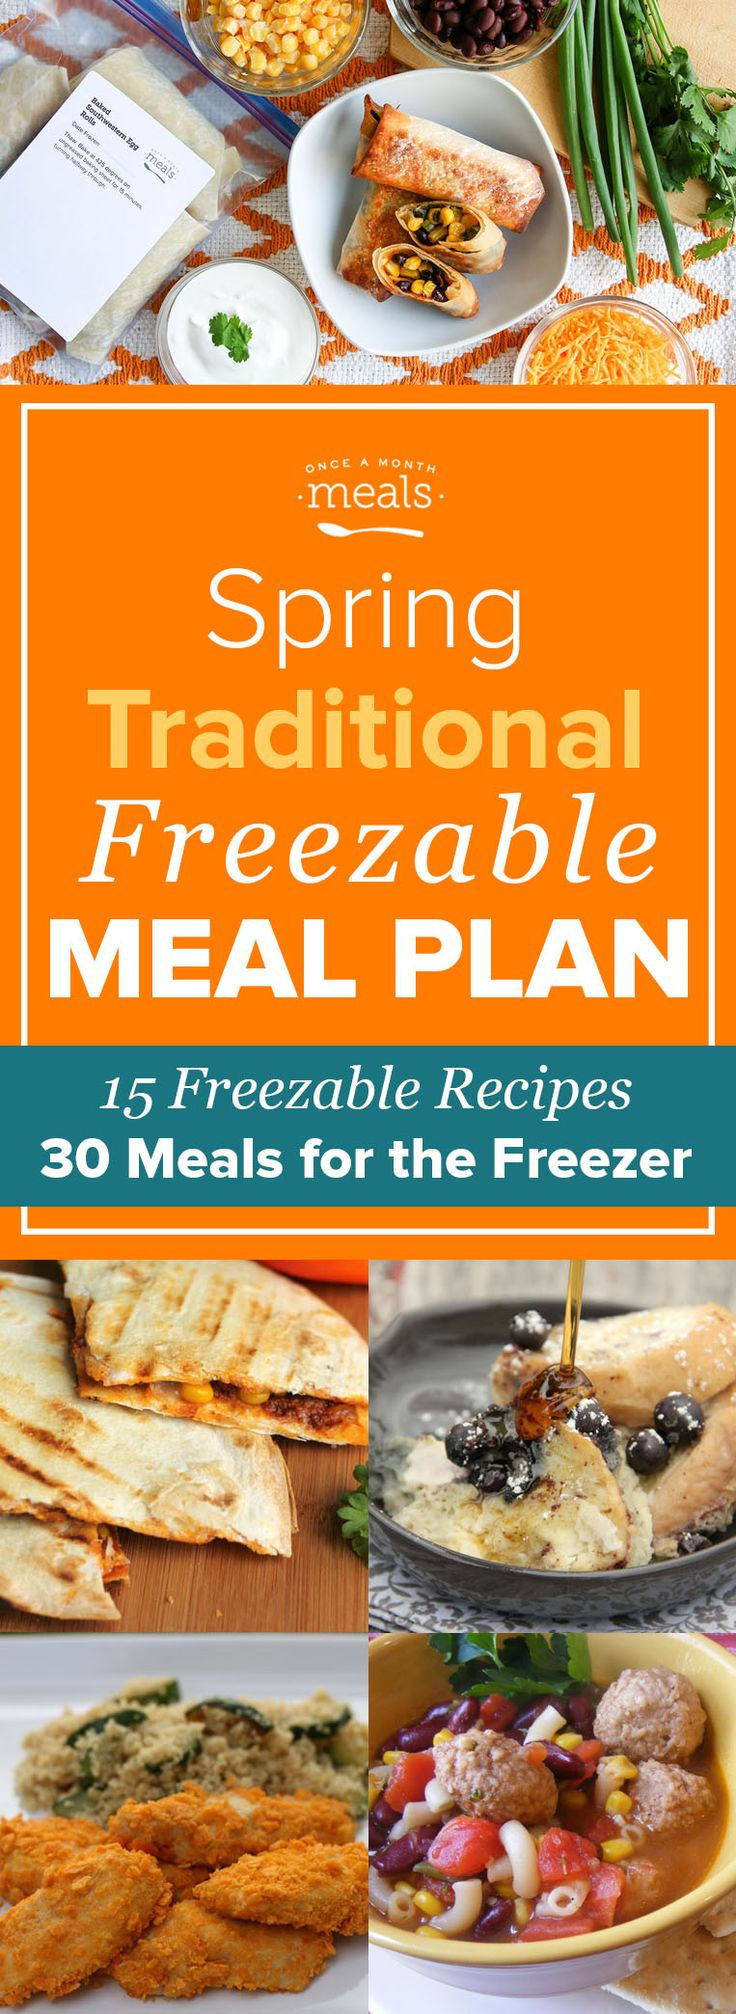 This Spring Traditional Freezer Menu features family-style meals like Chicken Marsala, Meatball Minestrone, and Chocolate Chip Banana Breakfast Cookies.